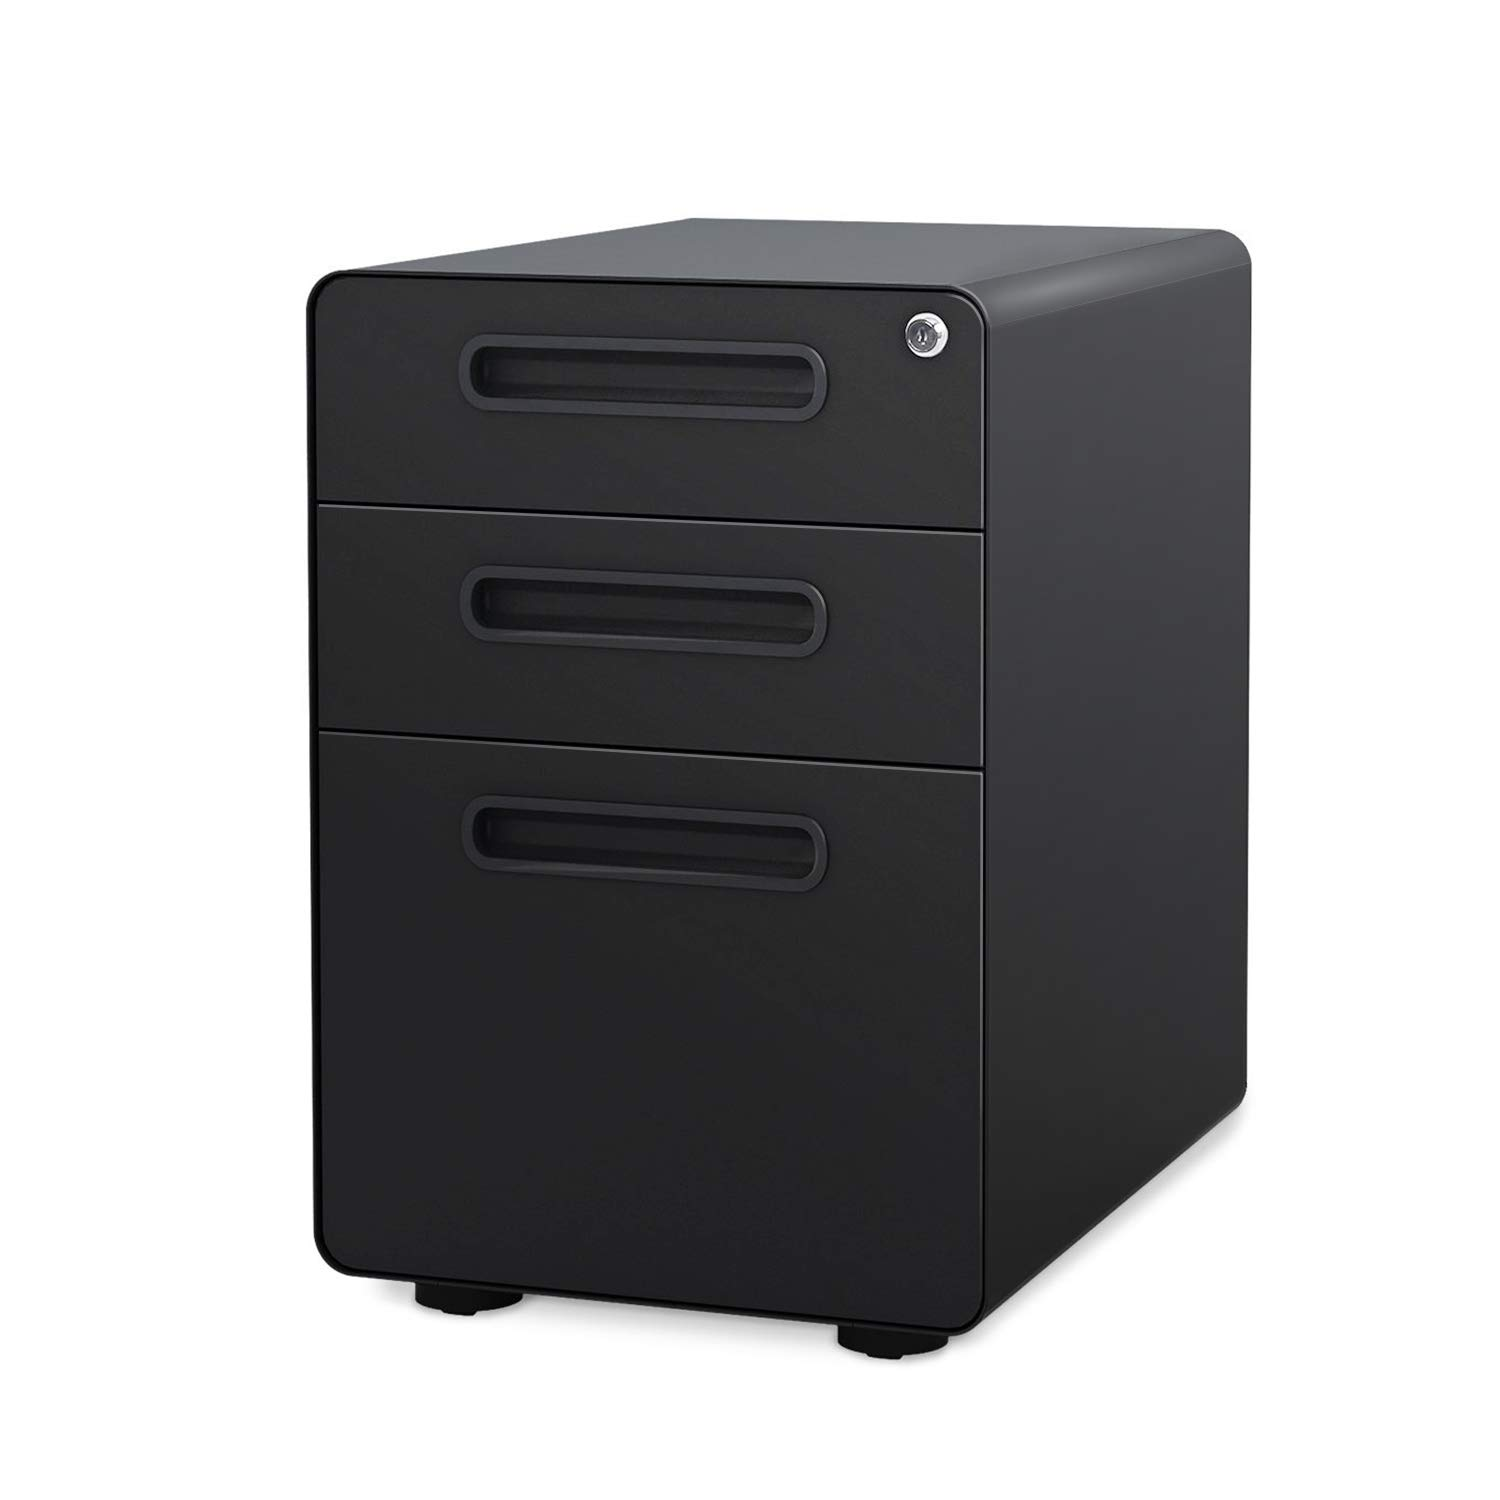 DEVAISE 3-Drawer Mobile File Cabinet with Anti-tilt Mechanism,Legal/Letter Size,Black